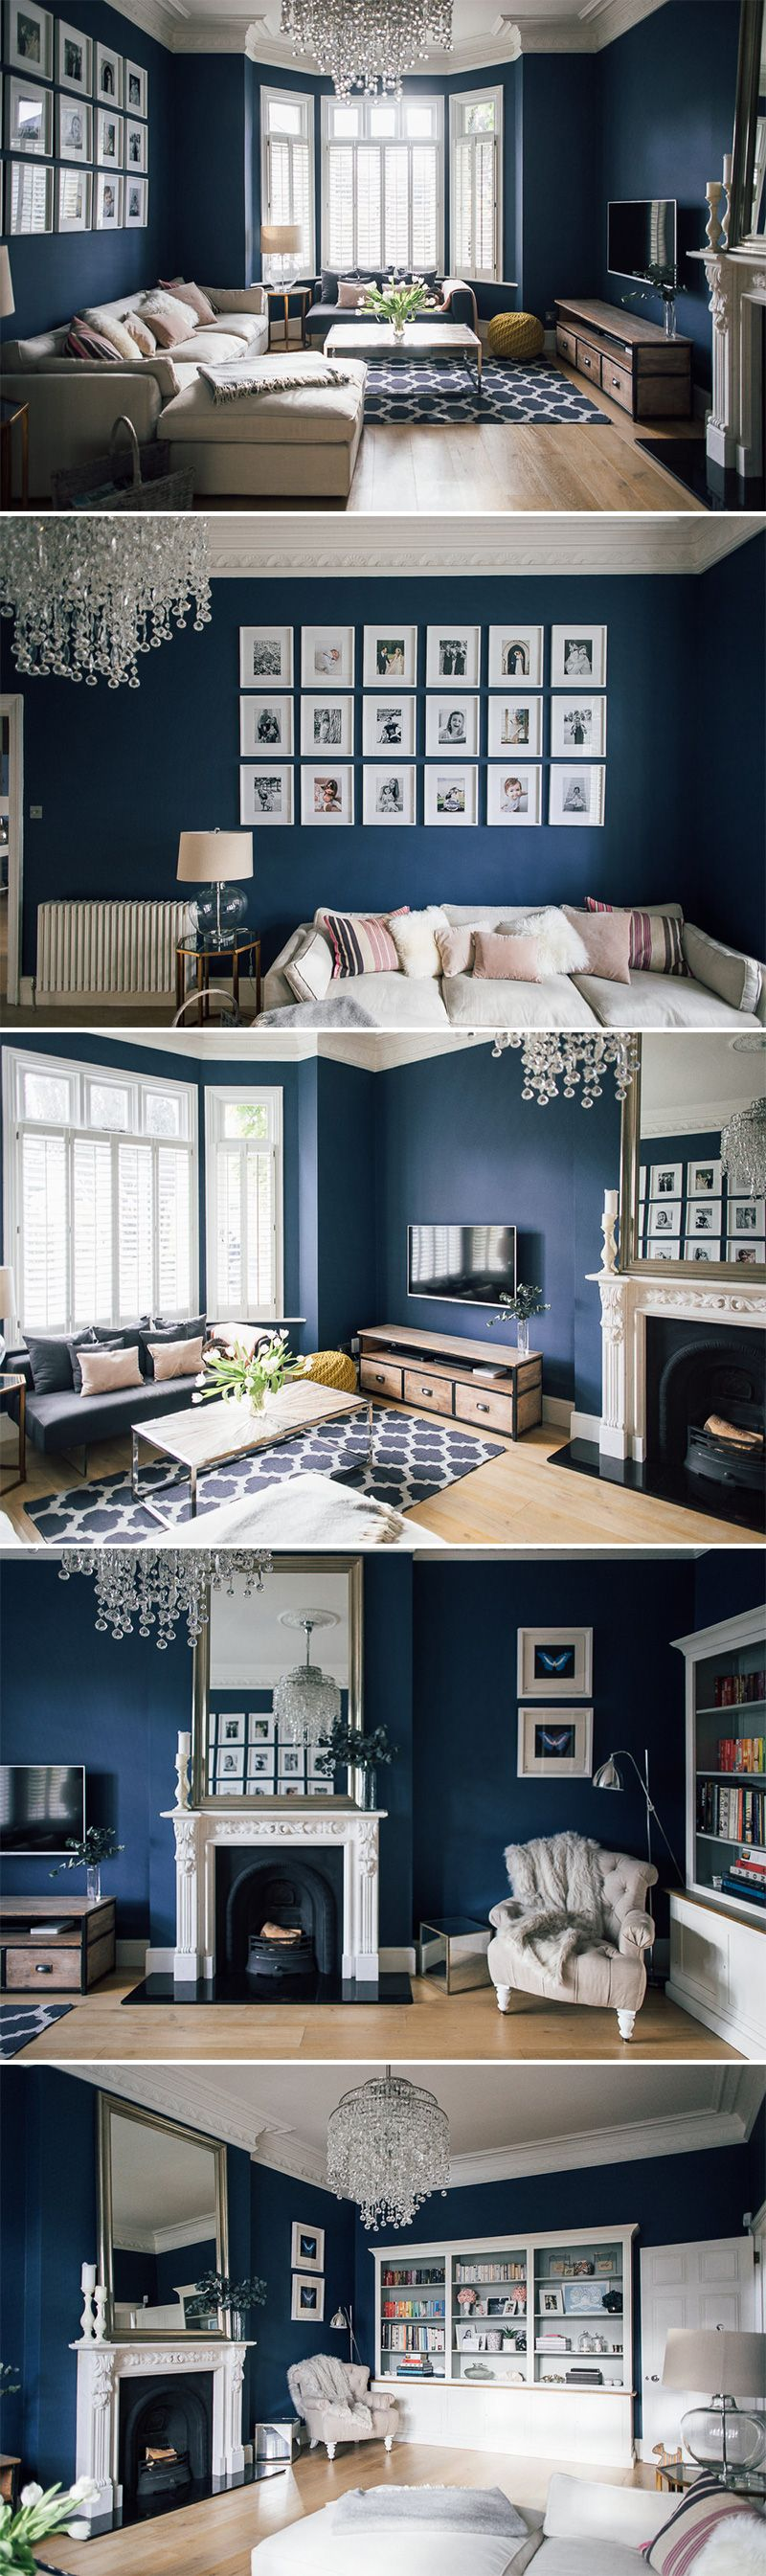 Victorian Villa Sitting Room Painted In Farrow U0026 Ball Stifkey Blue | Built  In Shelving | Sitting Room Shutters | Sitting Room Decor Ideas | Dark  Interior ...